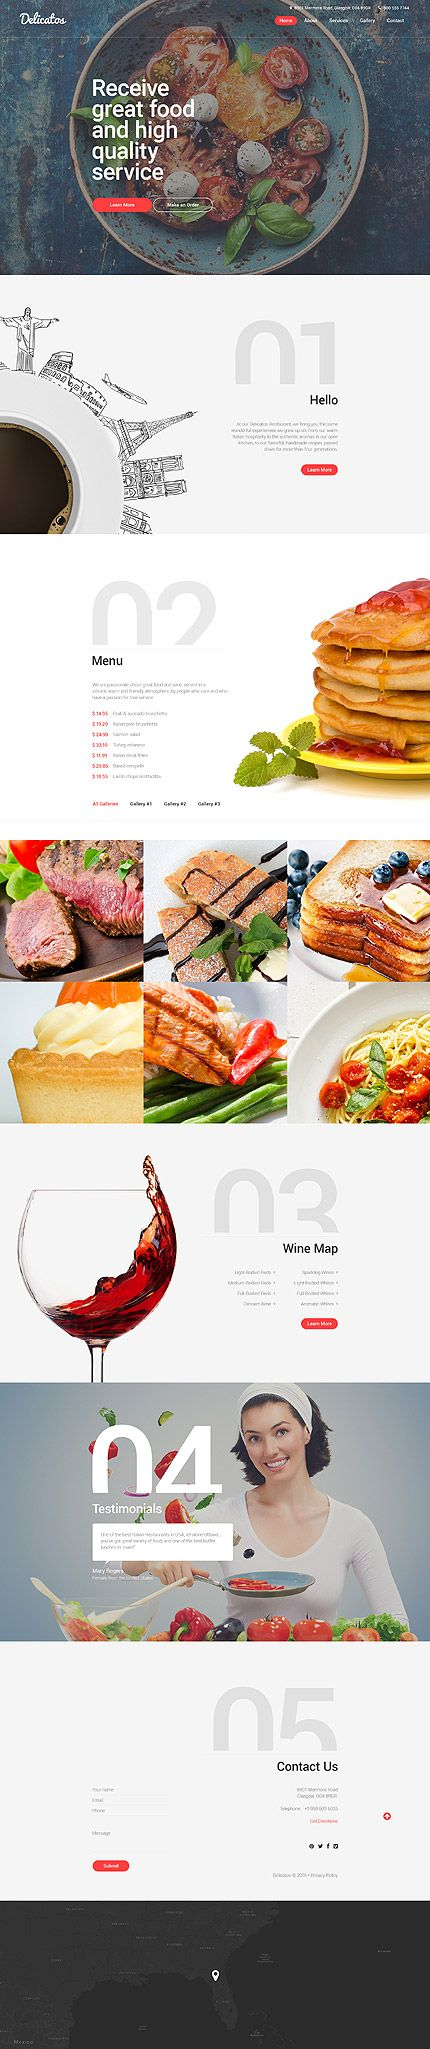 Template 57803 - Delicatos Restaurant Responsive Website Template